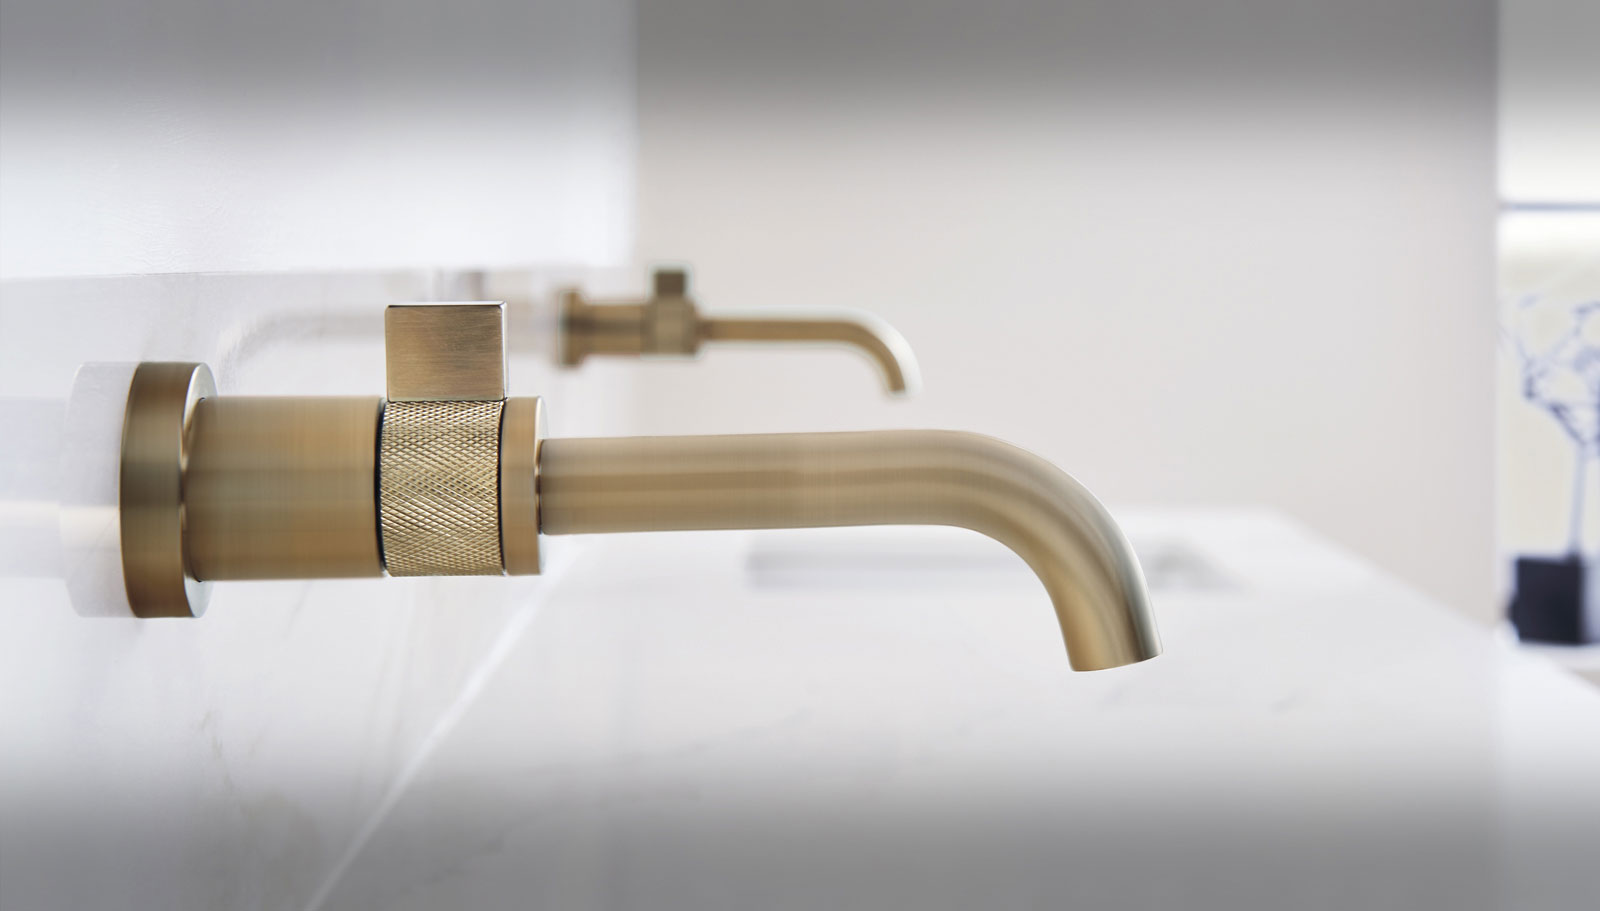 brizo single hole wall mounted lav faucet in luxe gold - the ultimate guide to luxury plumbing by the delight of design